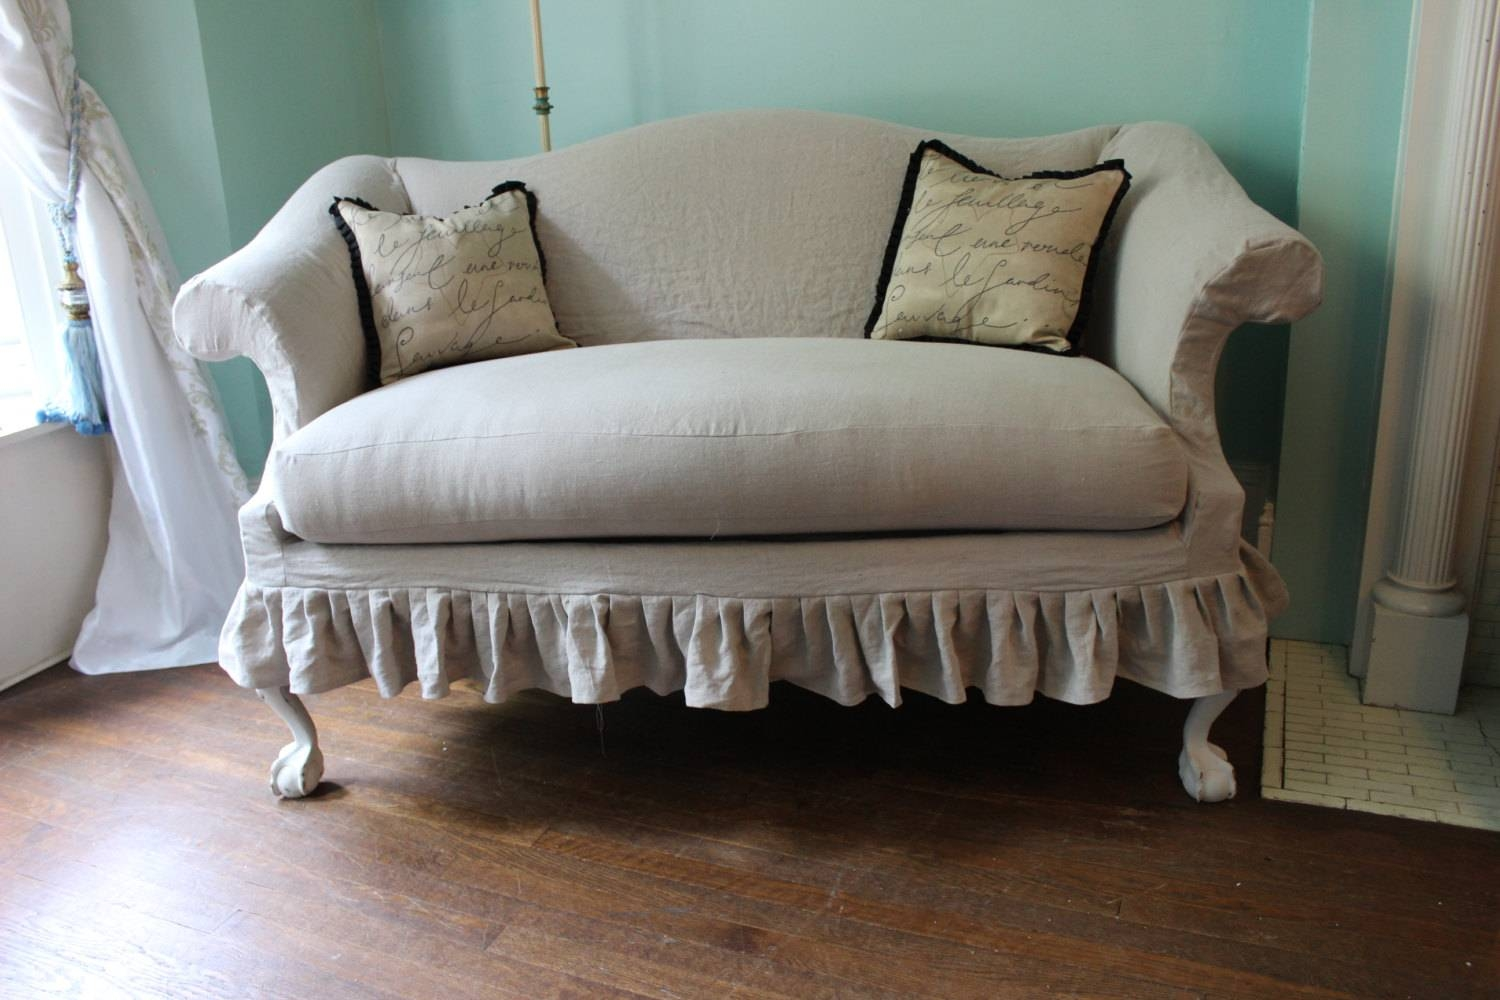 Old Reclining Loveseat Slipcover With White Color 2 Cushions And with regard to Slip Covers for Love Seats (Image 10 of 15)